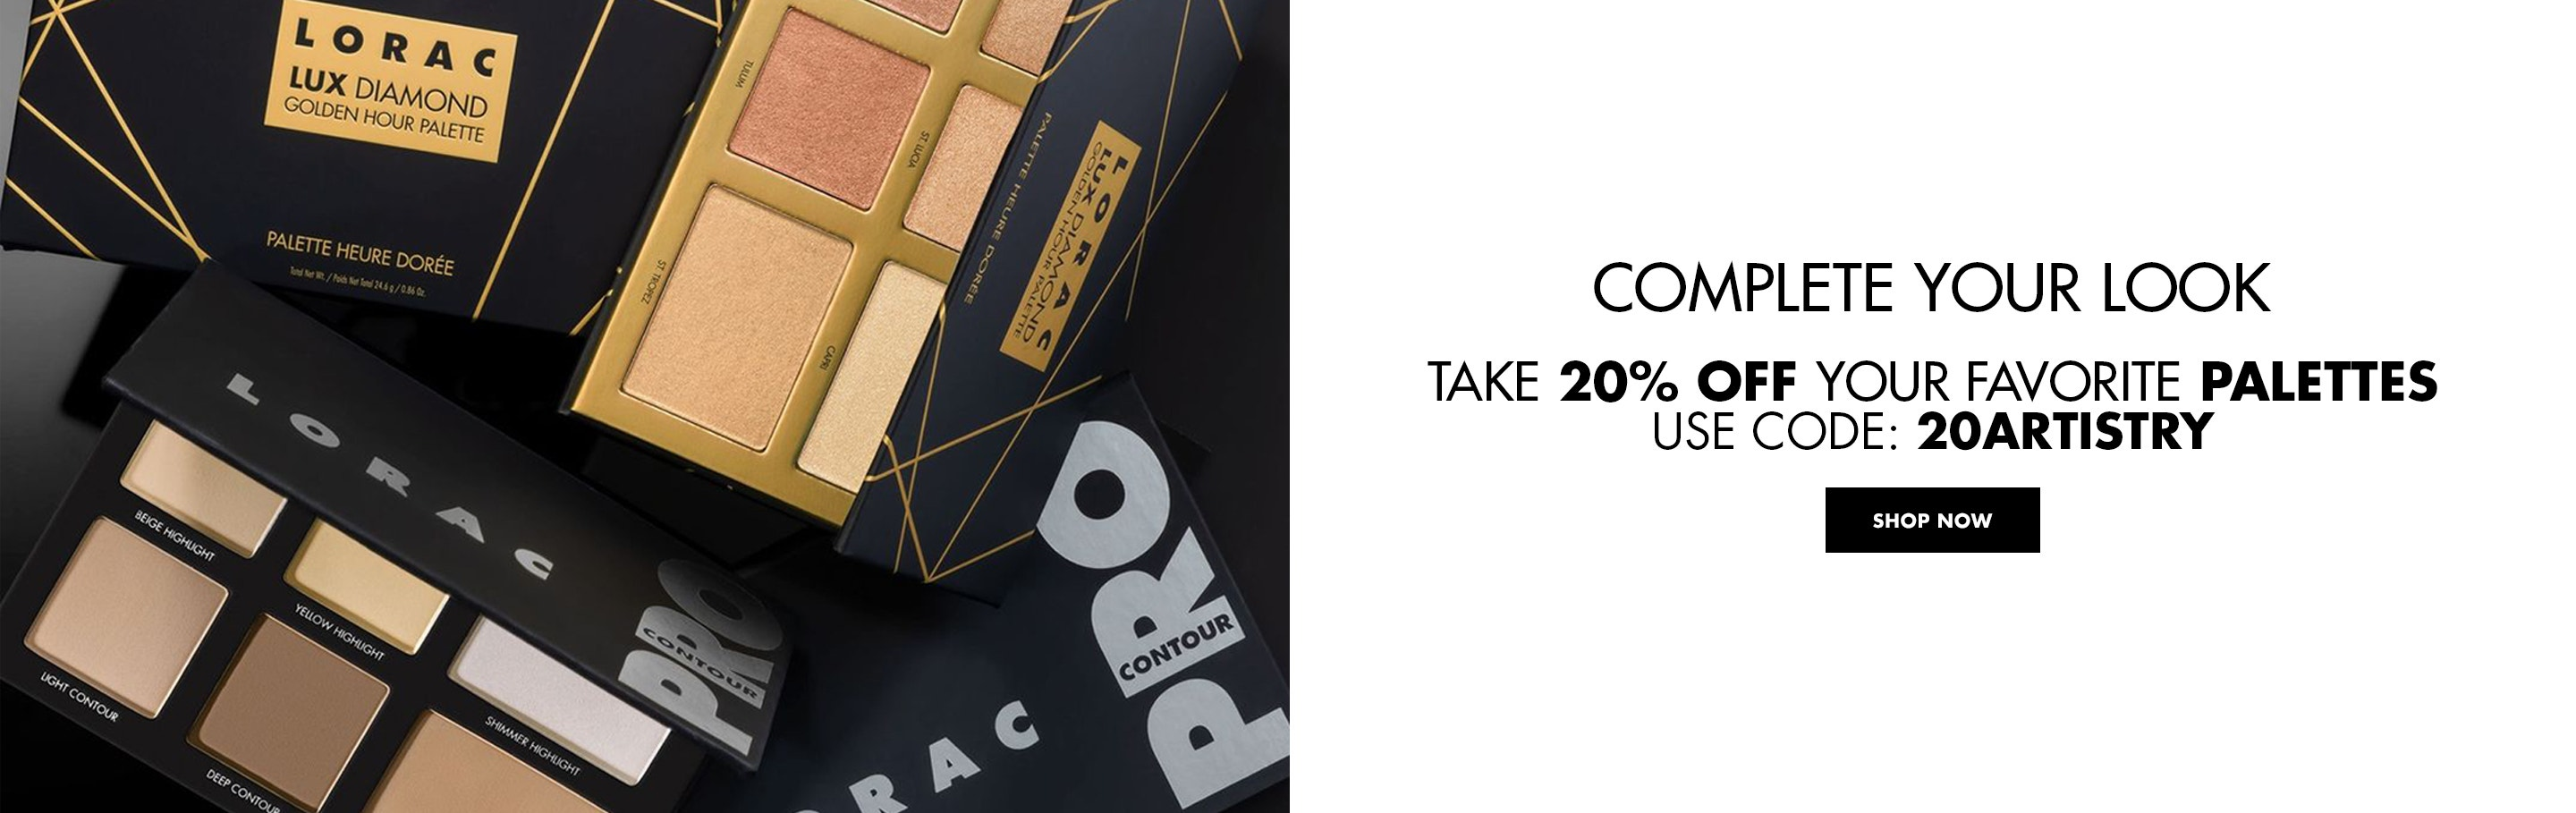 LORAC   Complete Your Look   Take 20% Off Your Favorite Palettes   Use Code: 20ARTISTRY at Checkout   Click Here to Shop Now